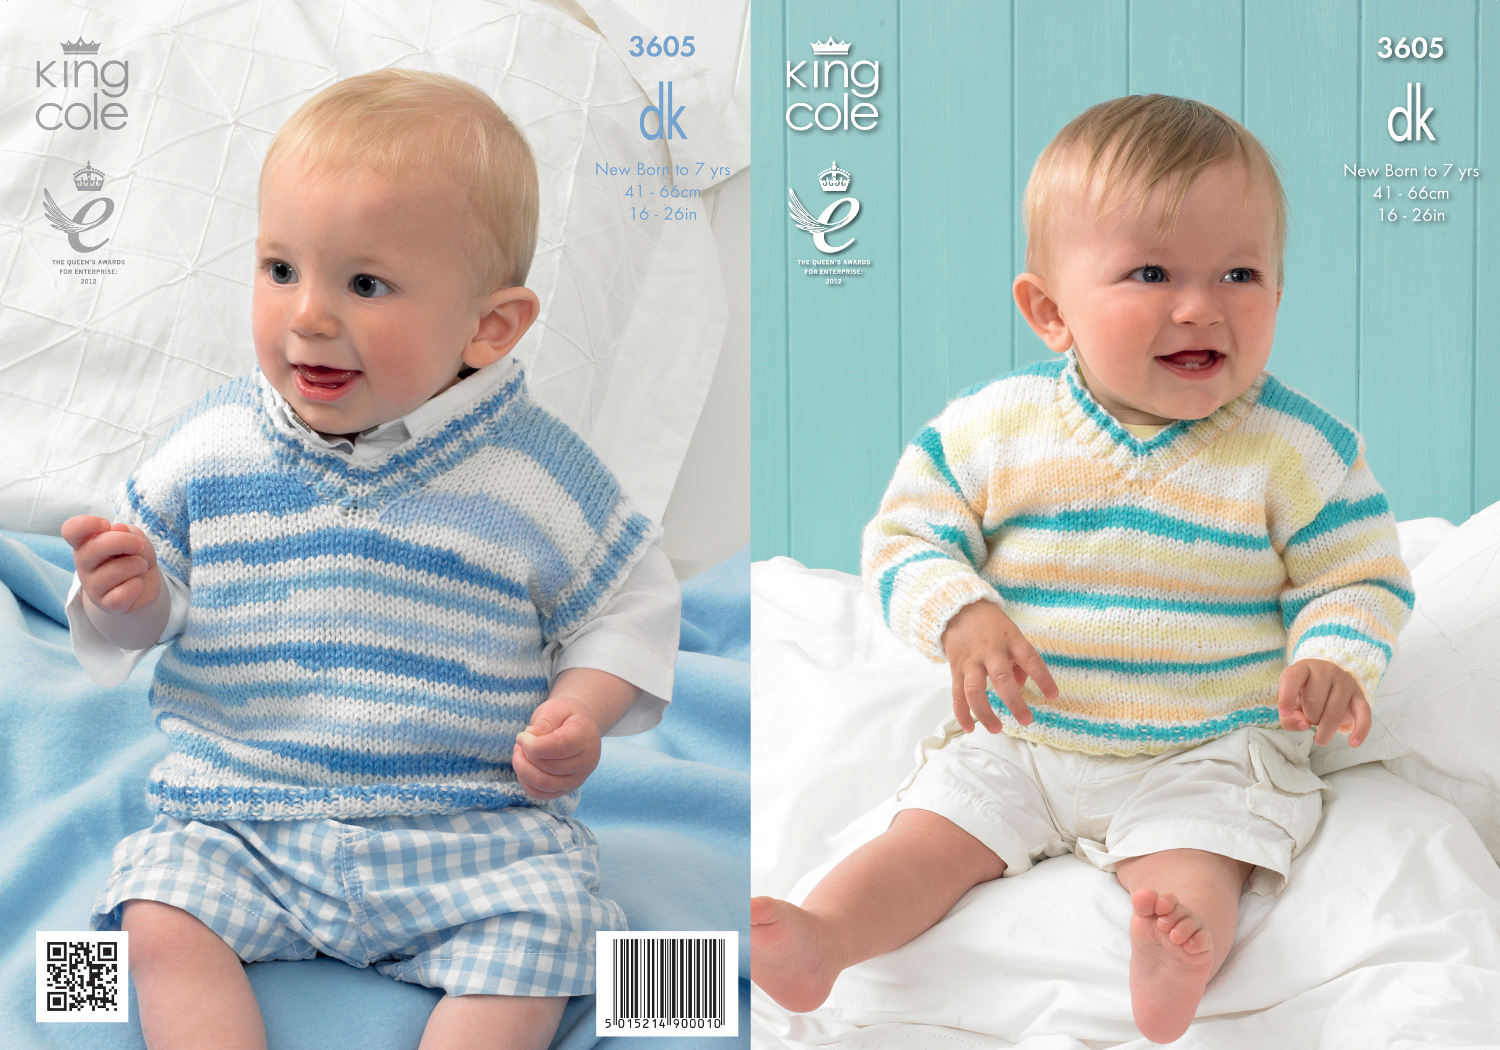 816c9507b King Cole Baby Double Knitting DK Pattern Striped V Neck Sweater Tank Top  3605